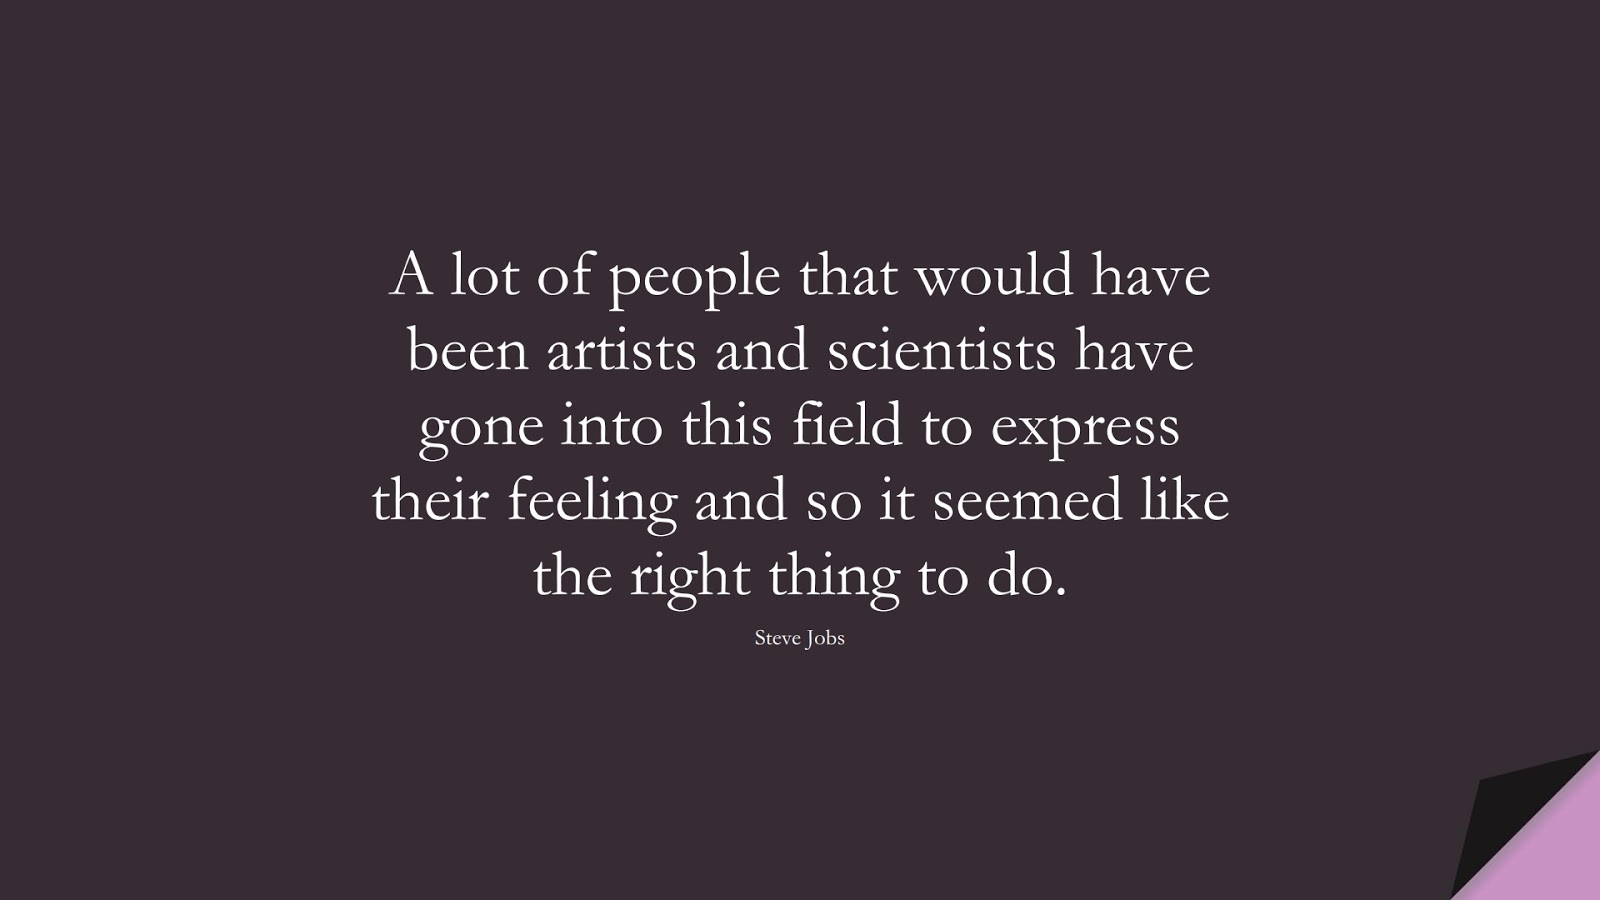 A lot of people that would have been artists and scientists have gone into this field to express their feeling and so it seemed like the right thing to do. (Steve Jobs);  #SteveJobsQuotes